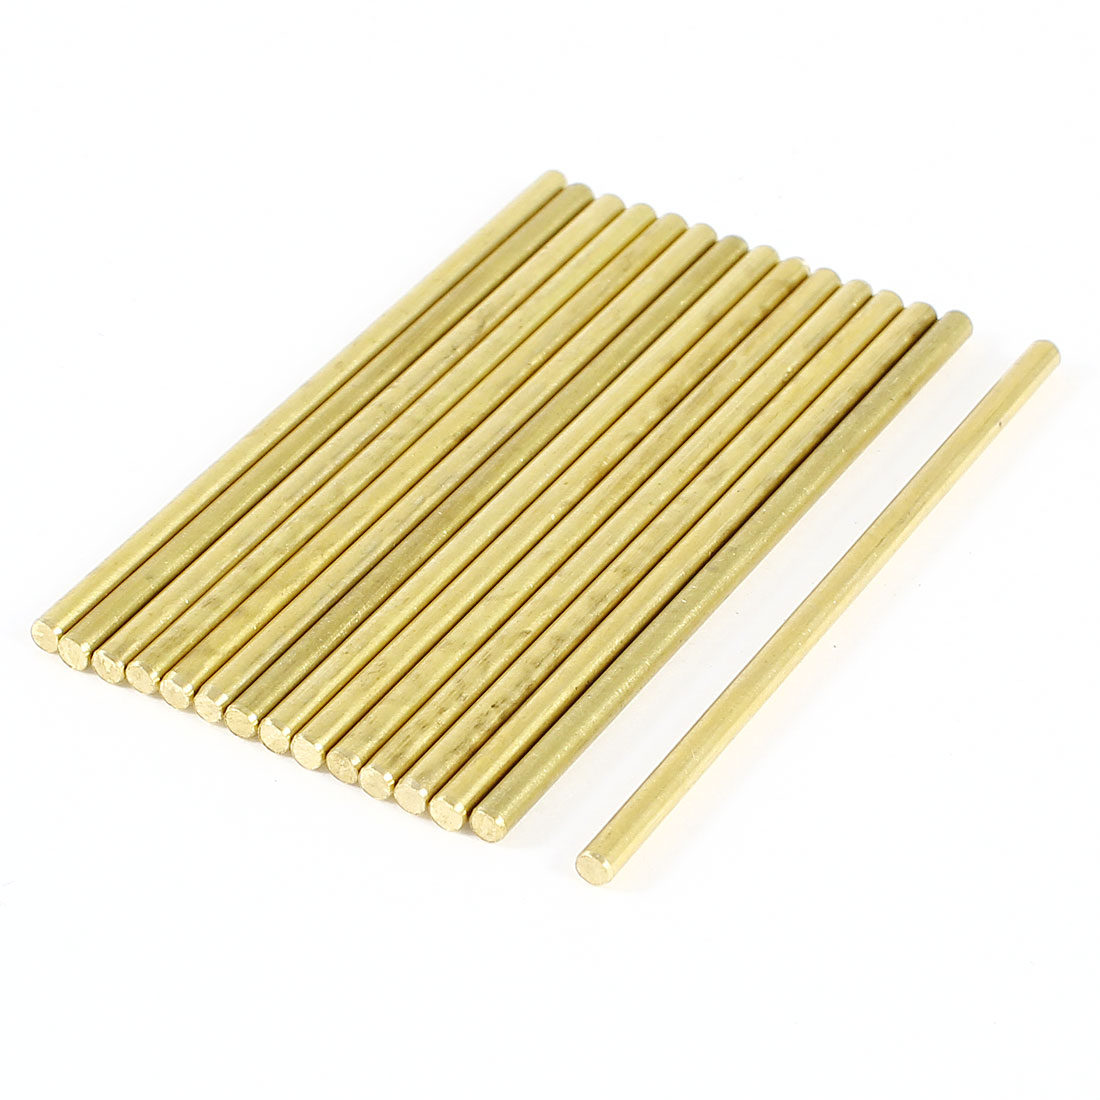 15 Pcs Car Helicopter Model Toy DIY Brass Axles Rod Bars 2mm x 50mm